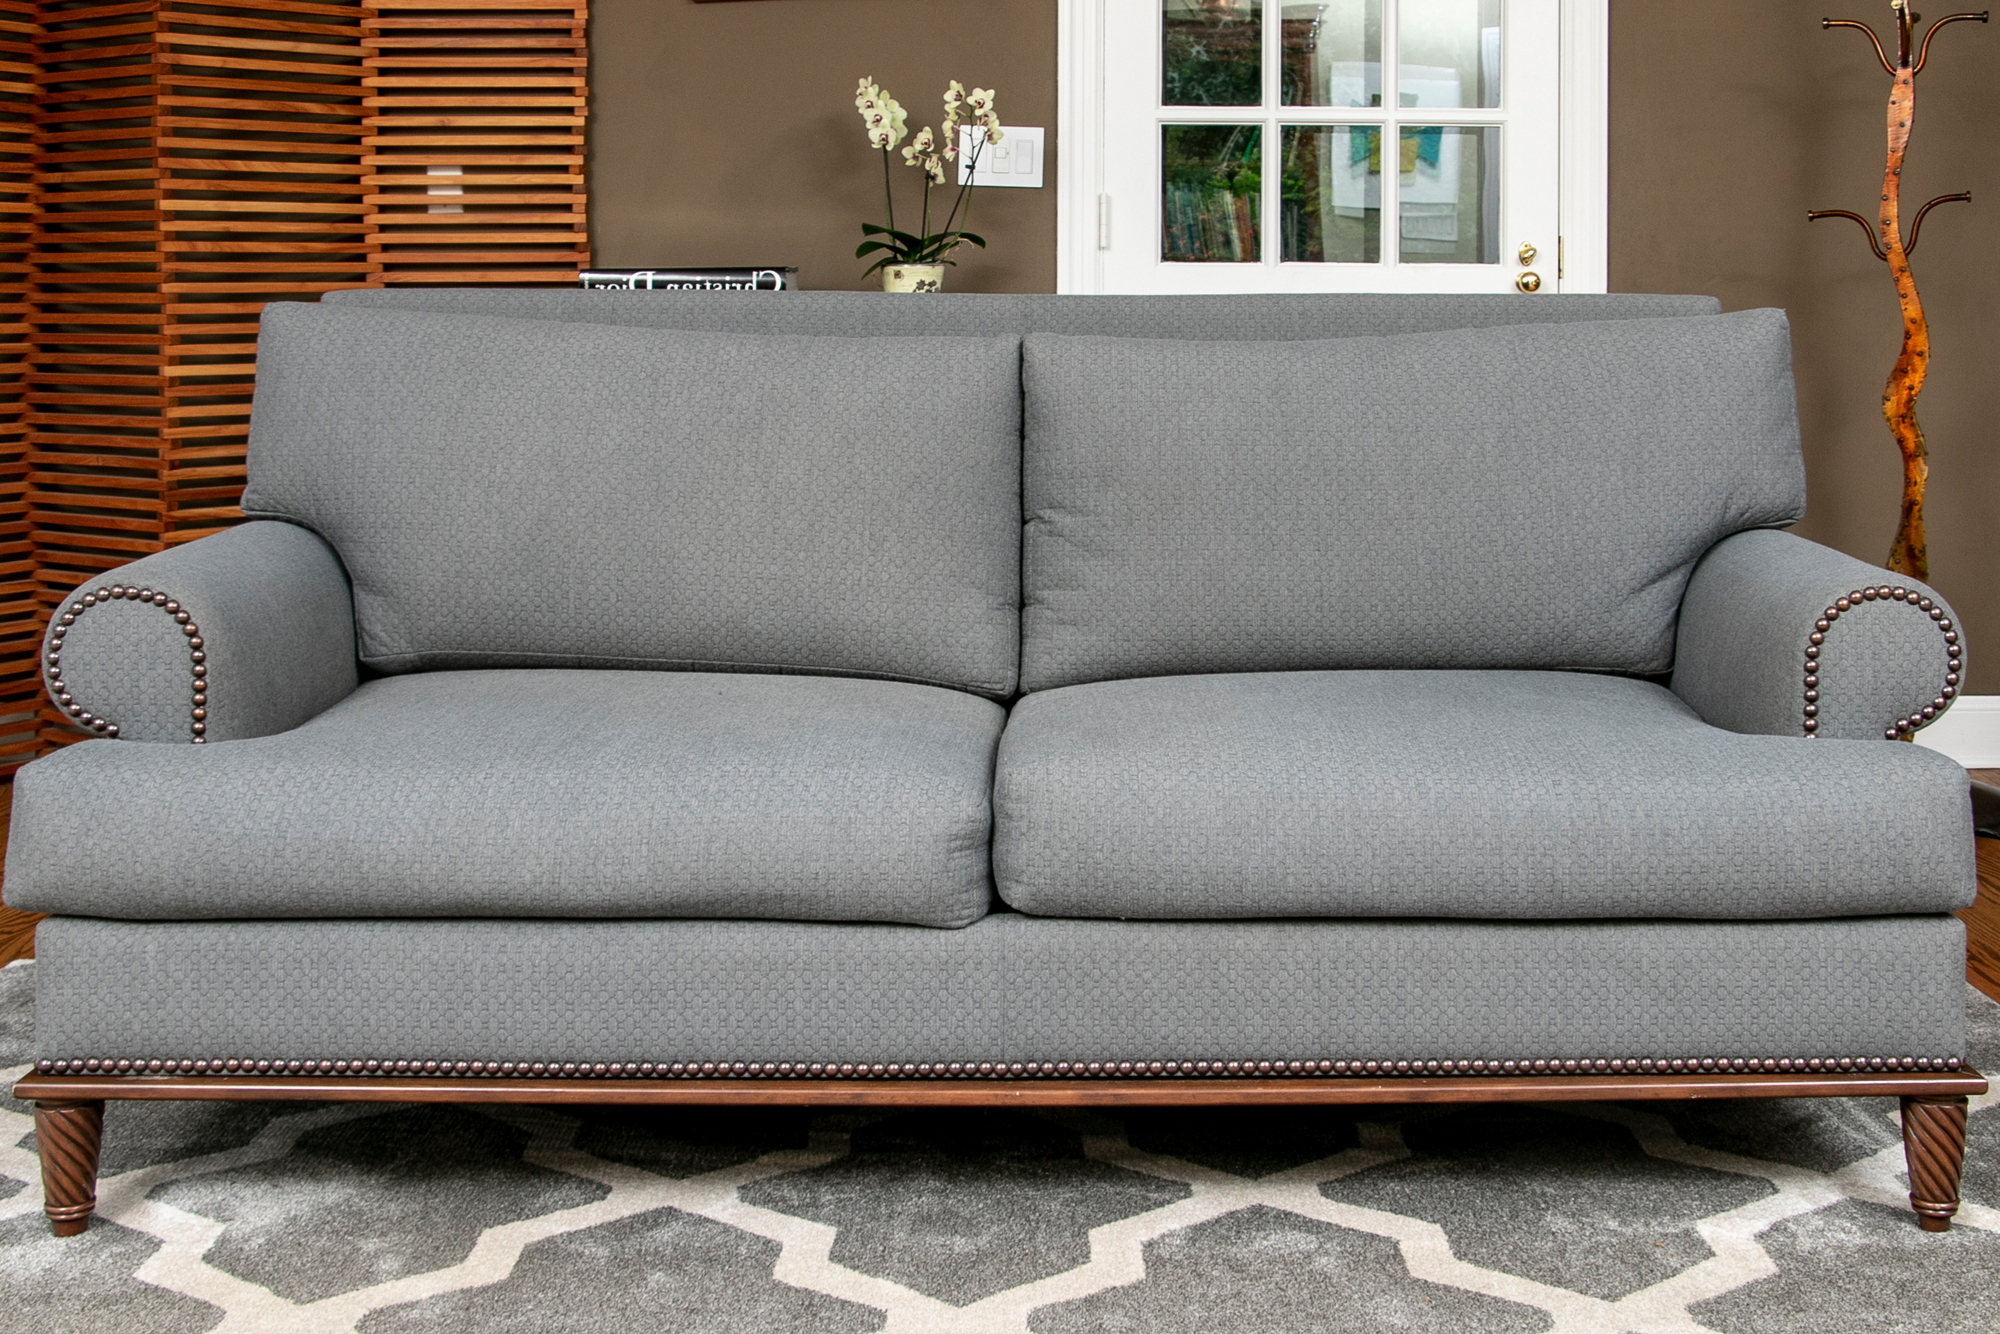 2Pc Polyfiber Sectional Sofas With Nailhead Trims Gray Regarding Widely Used Beautiful Custom Grey Upholstered Rolled Armed Sofa With (View 5 of 25)